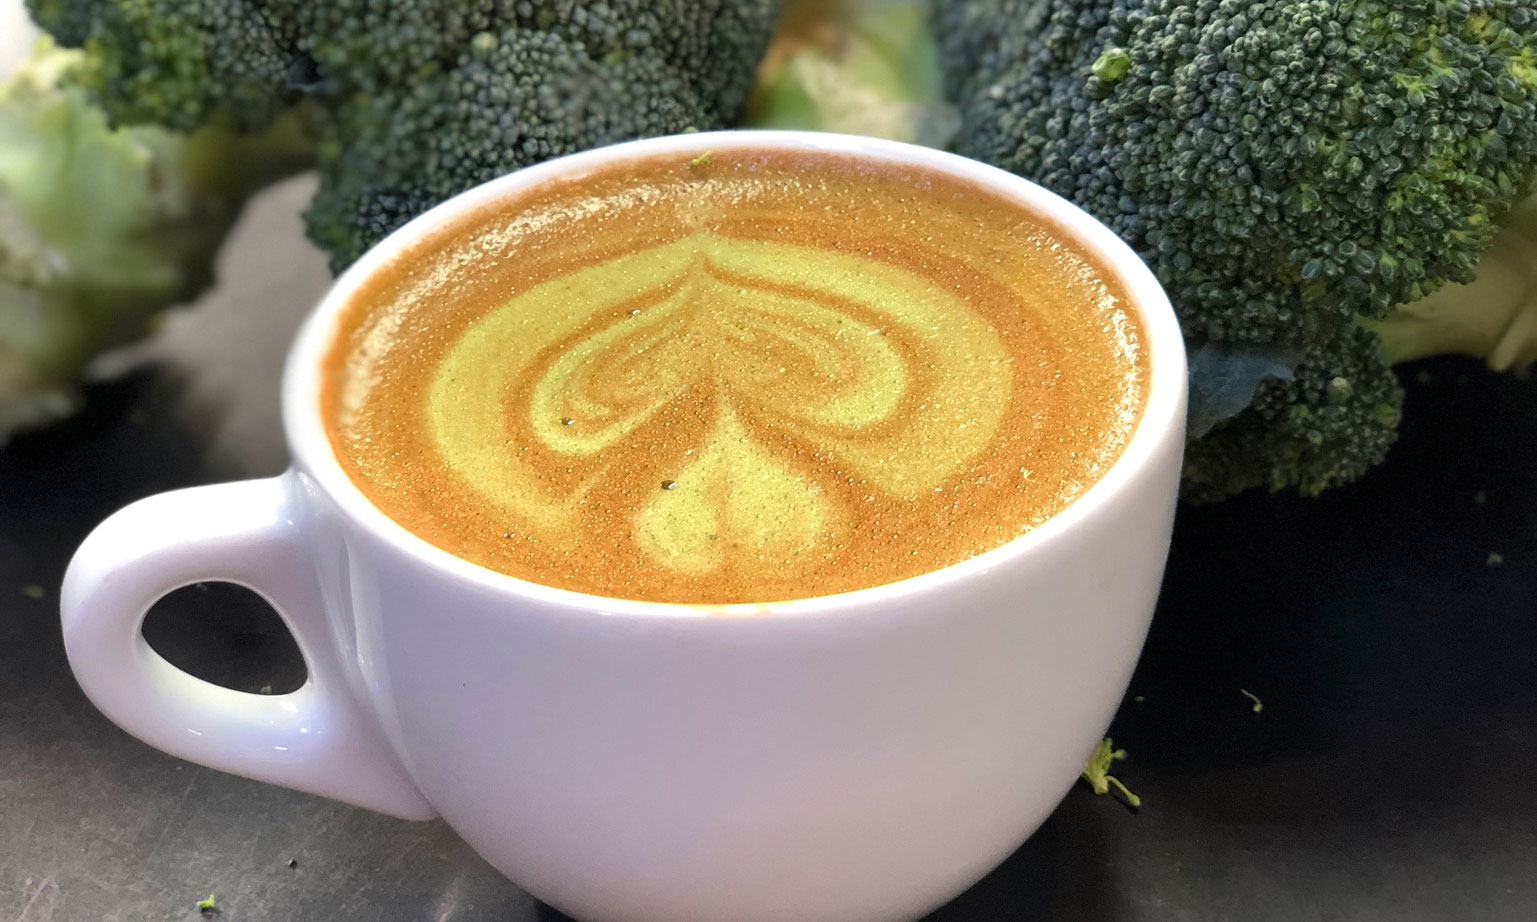 A broccoli latte on a table with broccoli florets in the background.